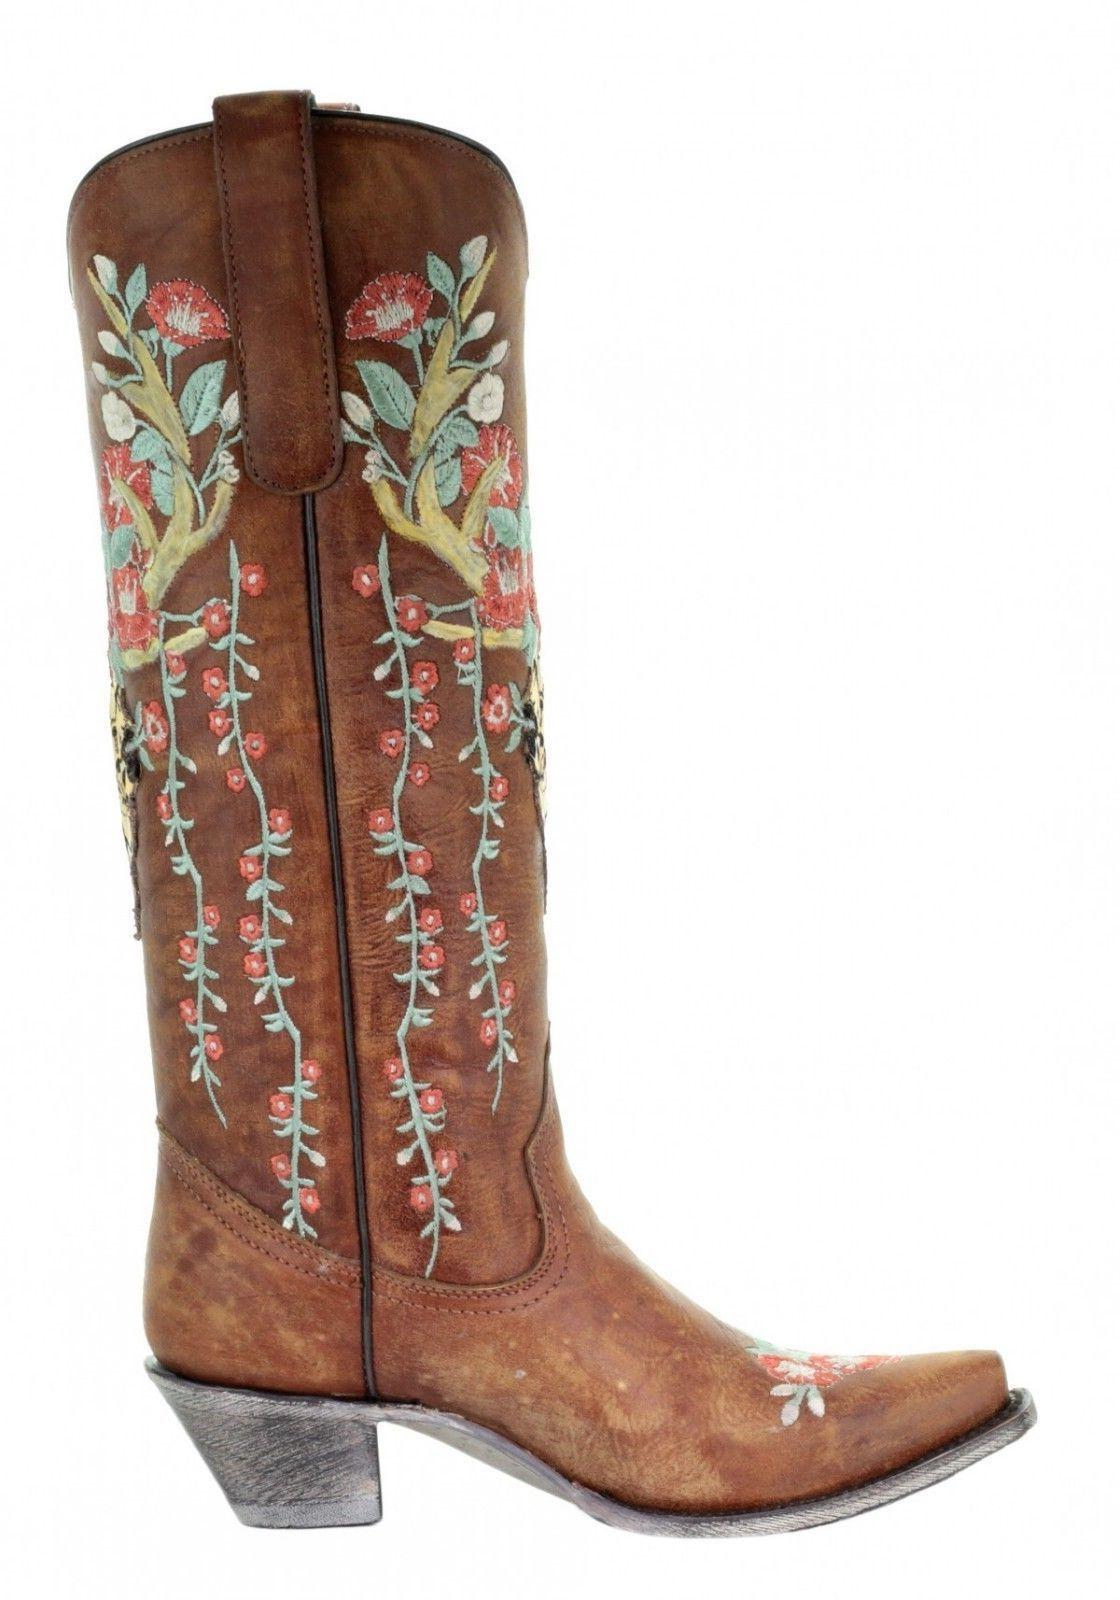 Corral Floral Embroidered Western A3620